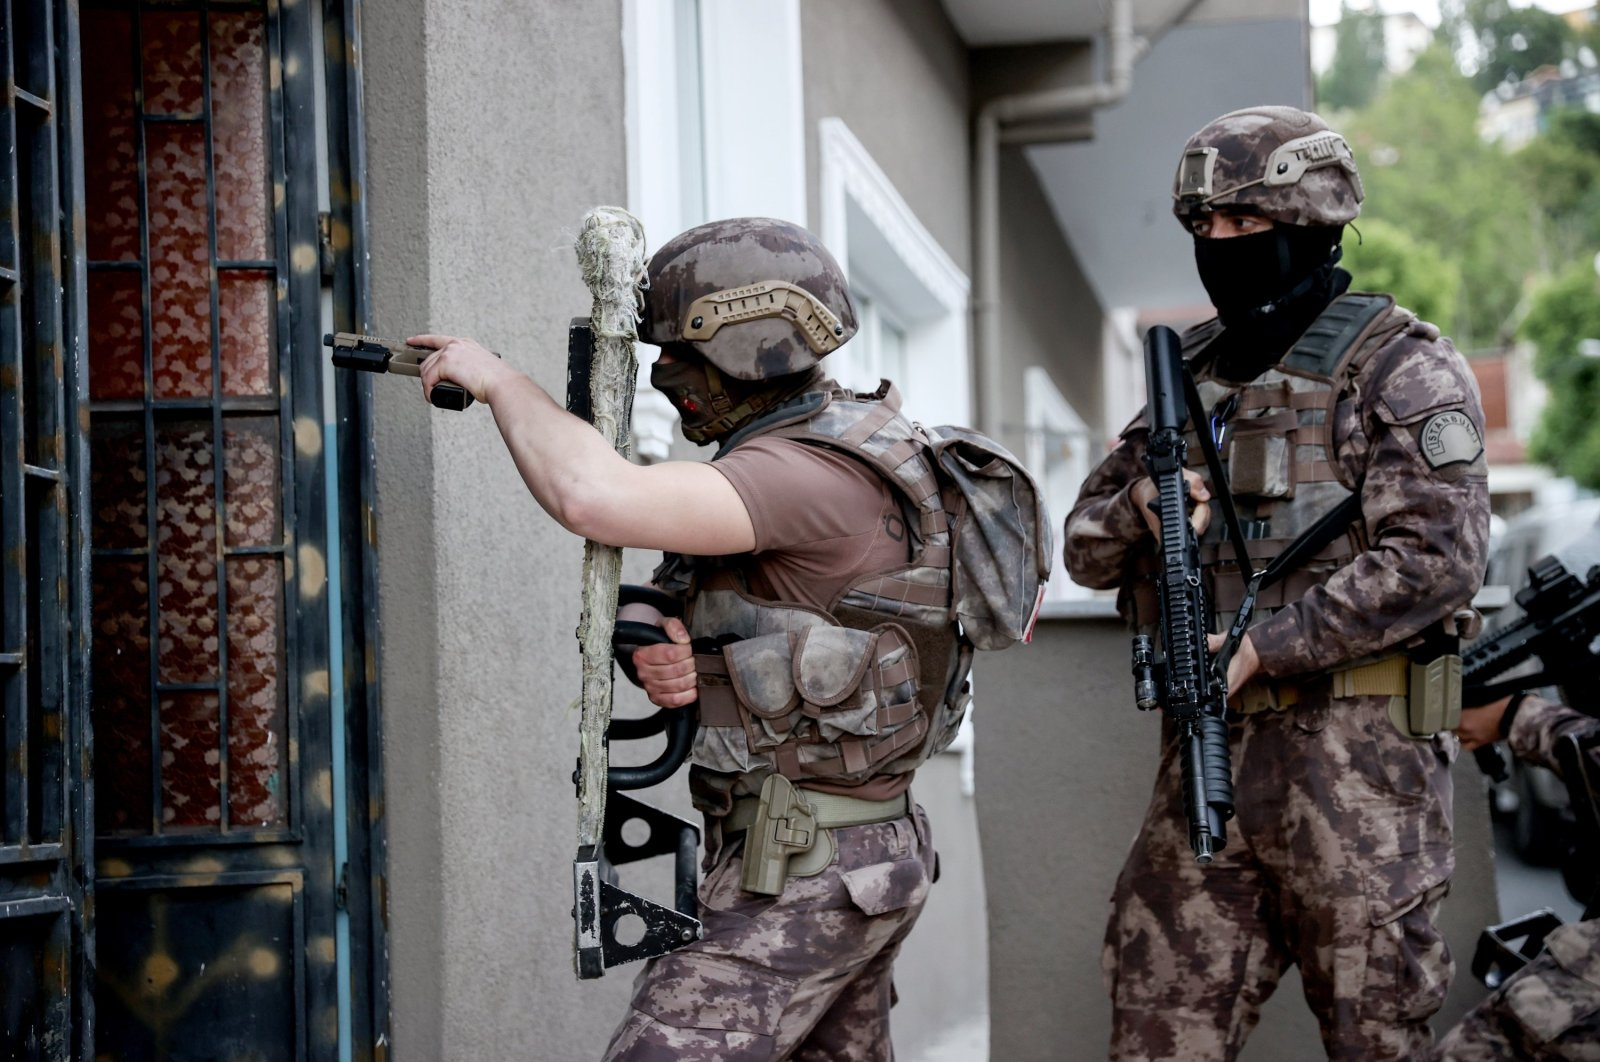 Turkish counterterrorism units enter a home during raids in an unspecified location in this undated file photo. (AA Photo)